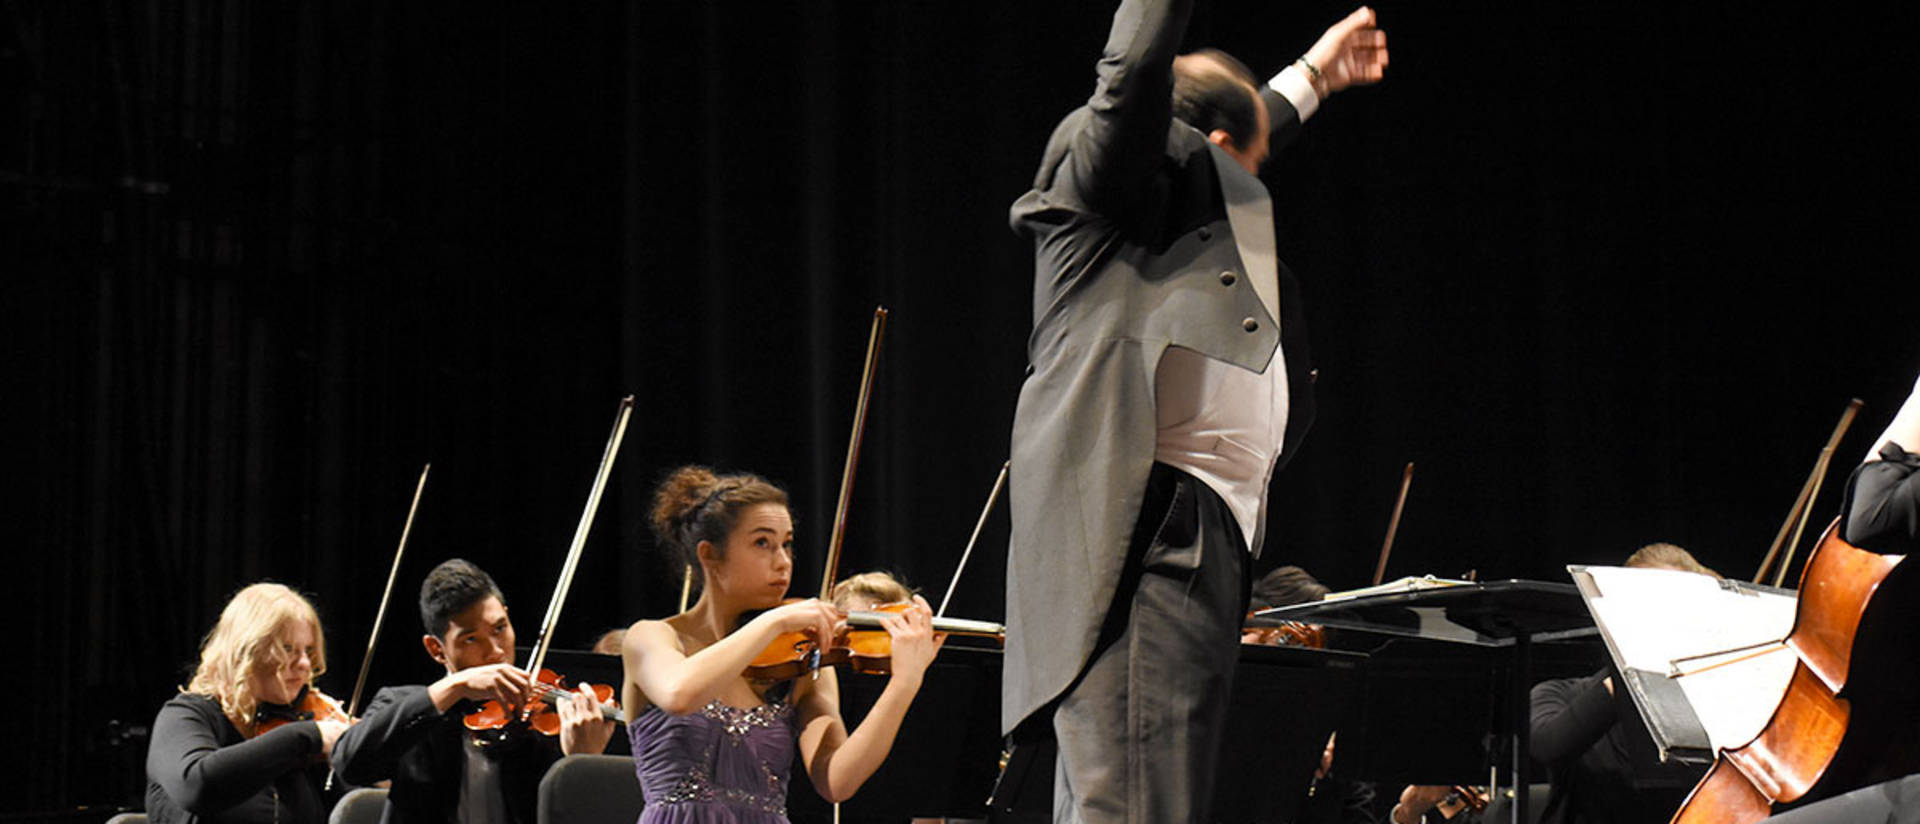 Anne Schreiber, violin, and student conductor Carlos Rojo